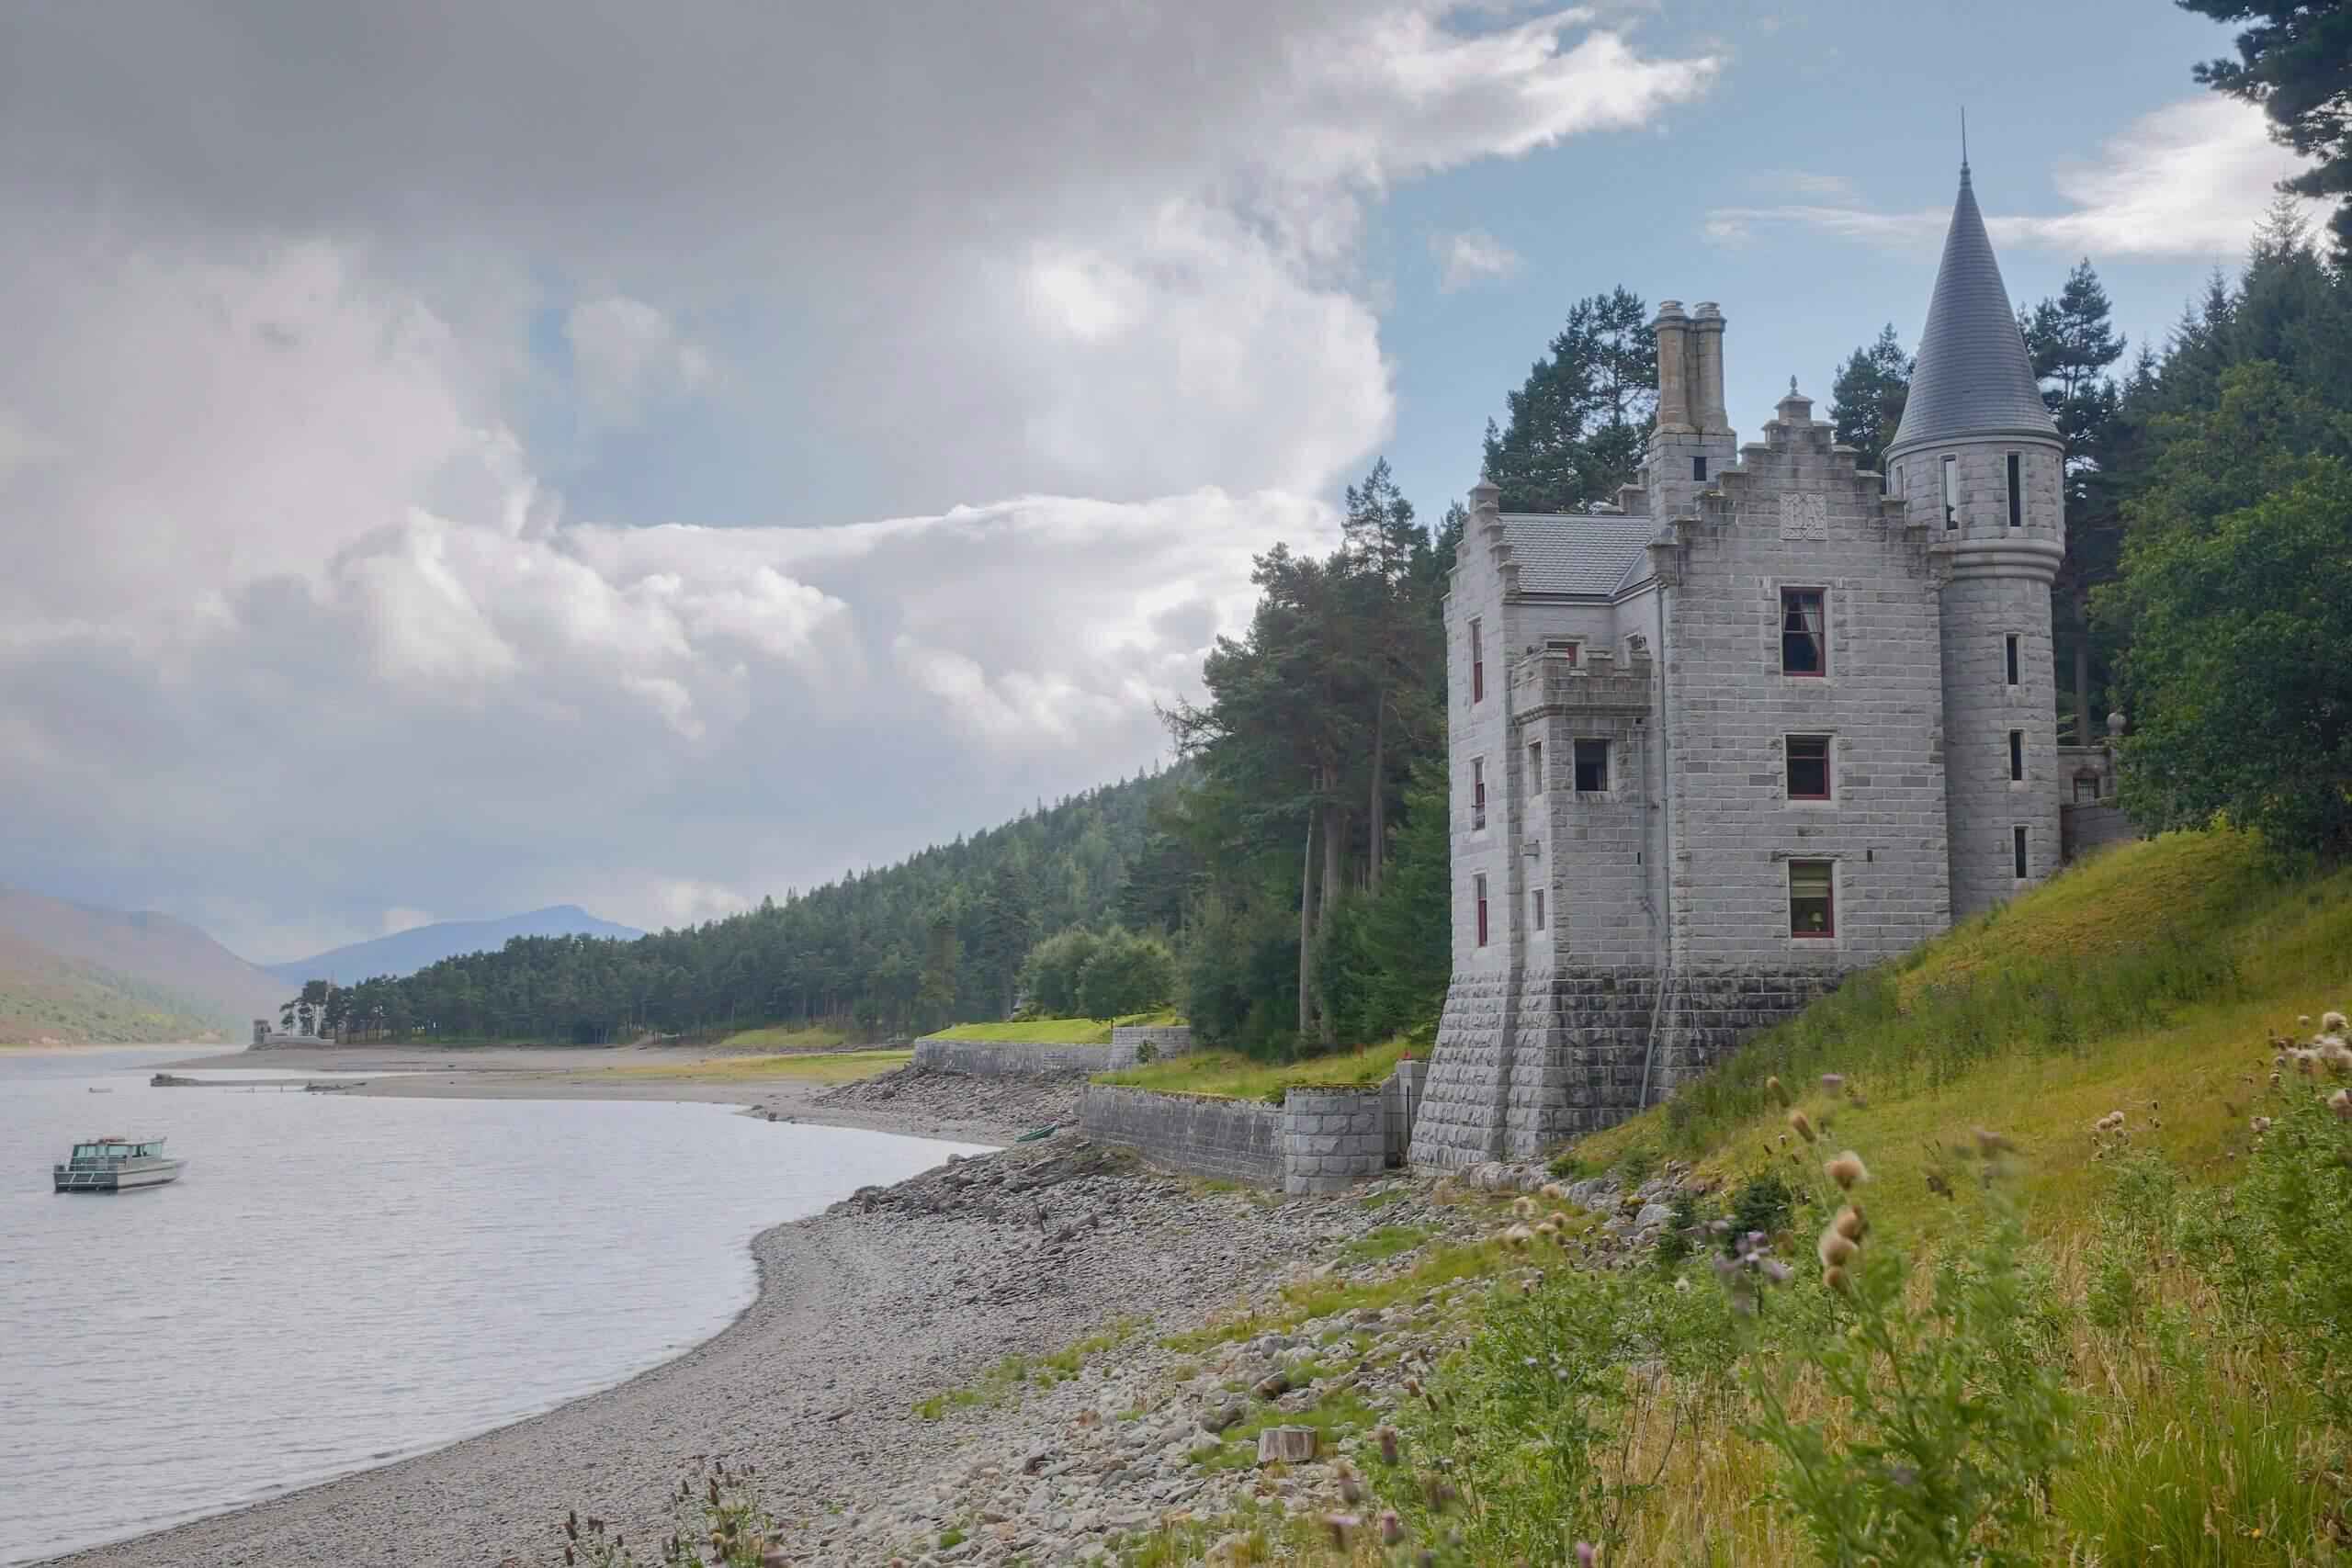 Exterior view of the Gate lodge within the Ben Alder Estate